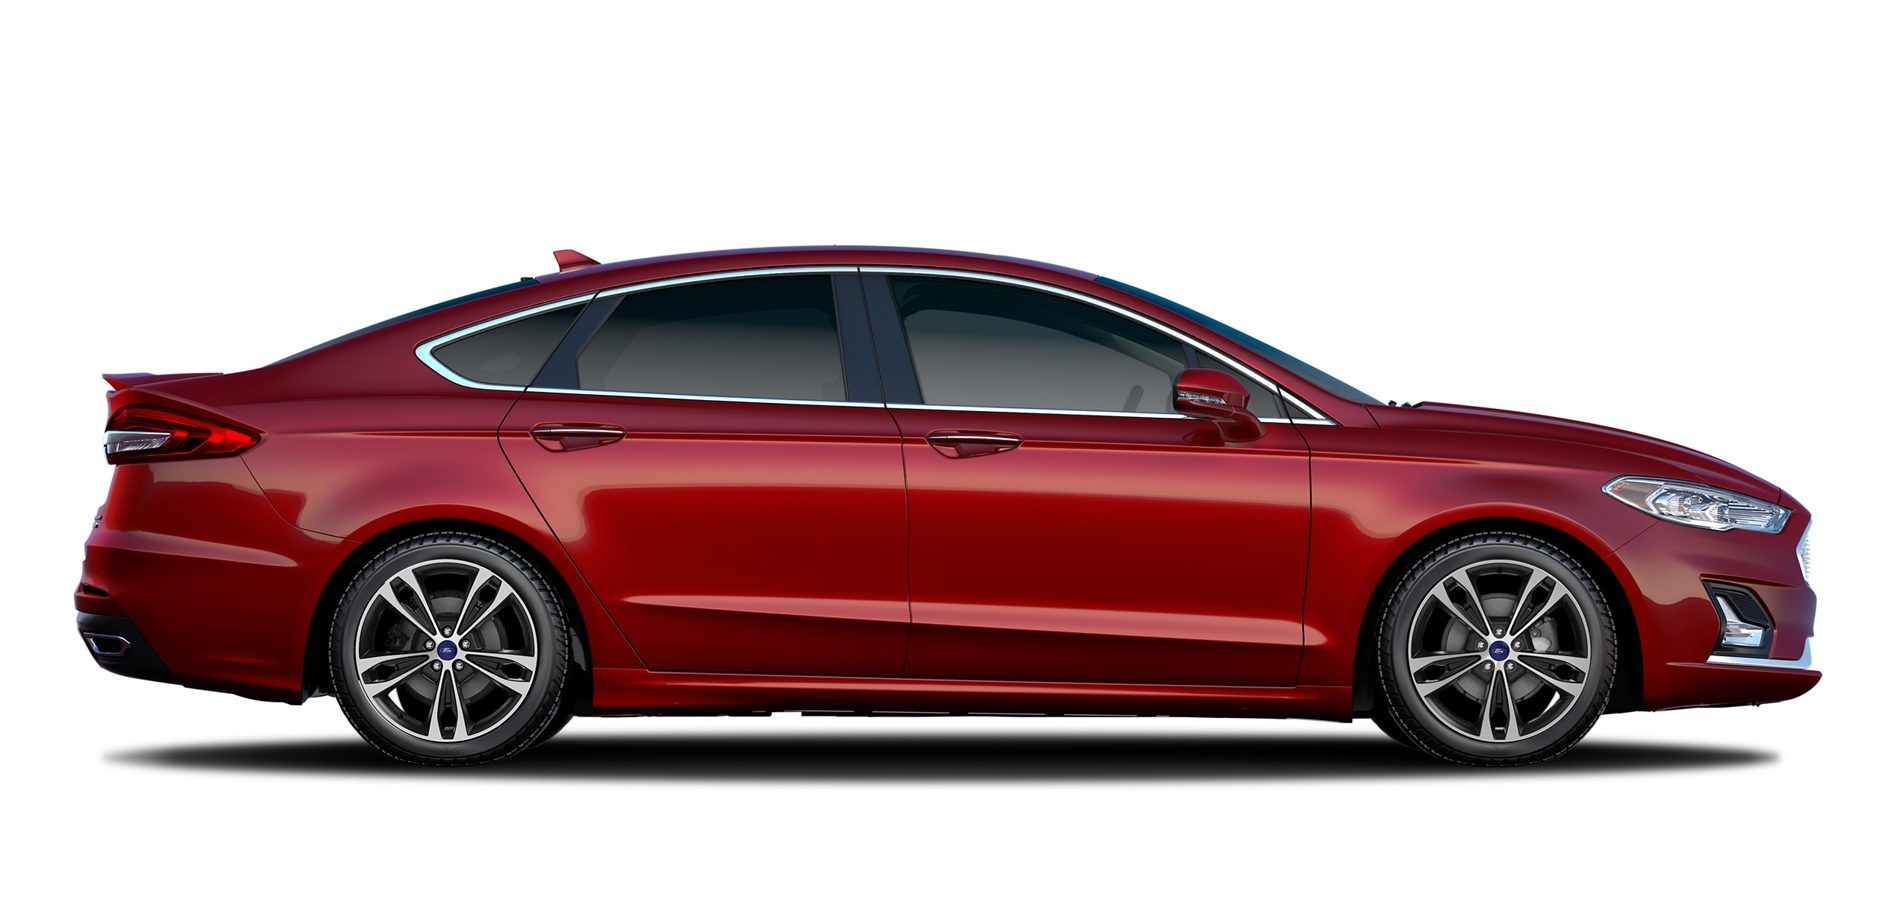 2020 Ford Fusion side profile